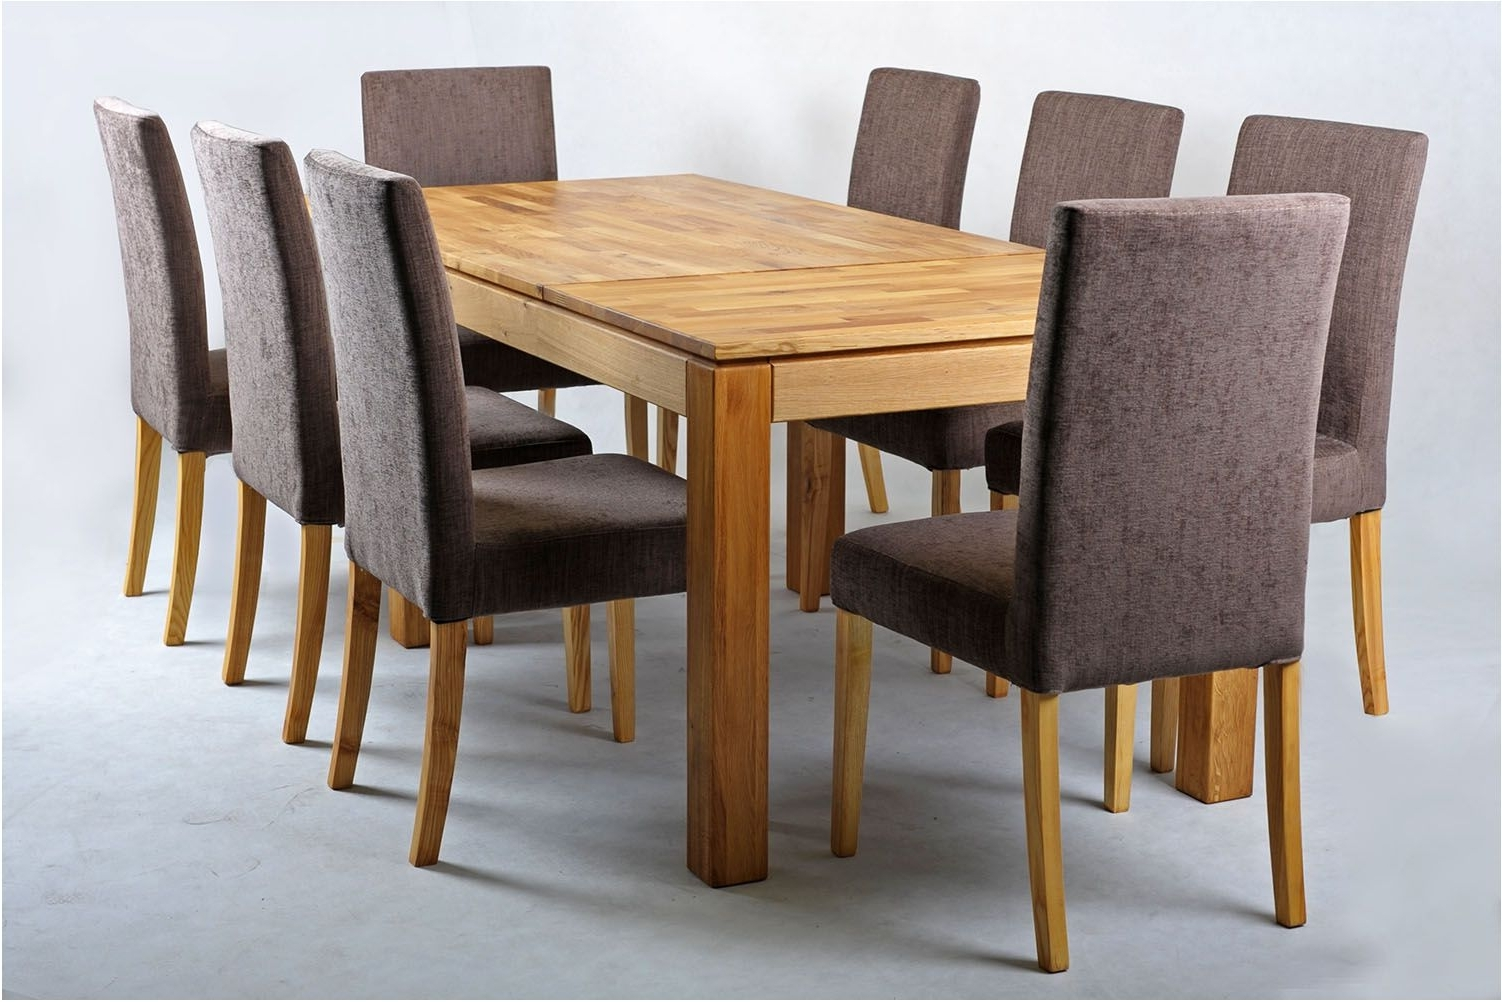 Famous Terrific Solid Oak Extending Dining Table And Chairs Set Home Goods Pertaining To Extendable Oak Dining Tables And Chairs (View 9 of 25)